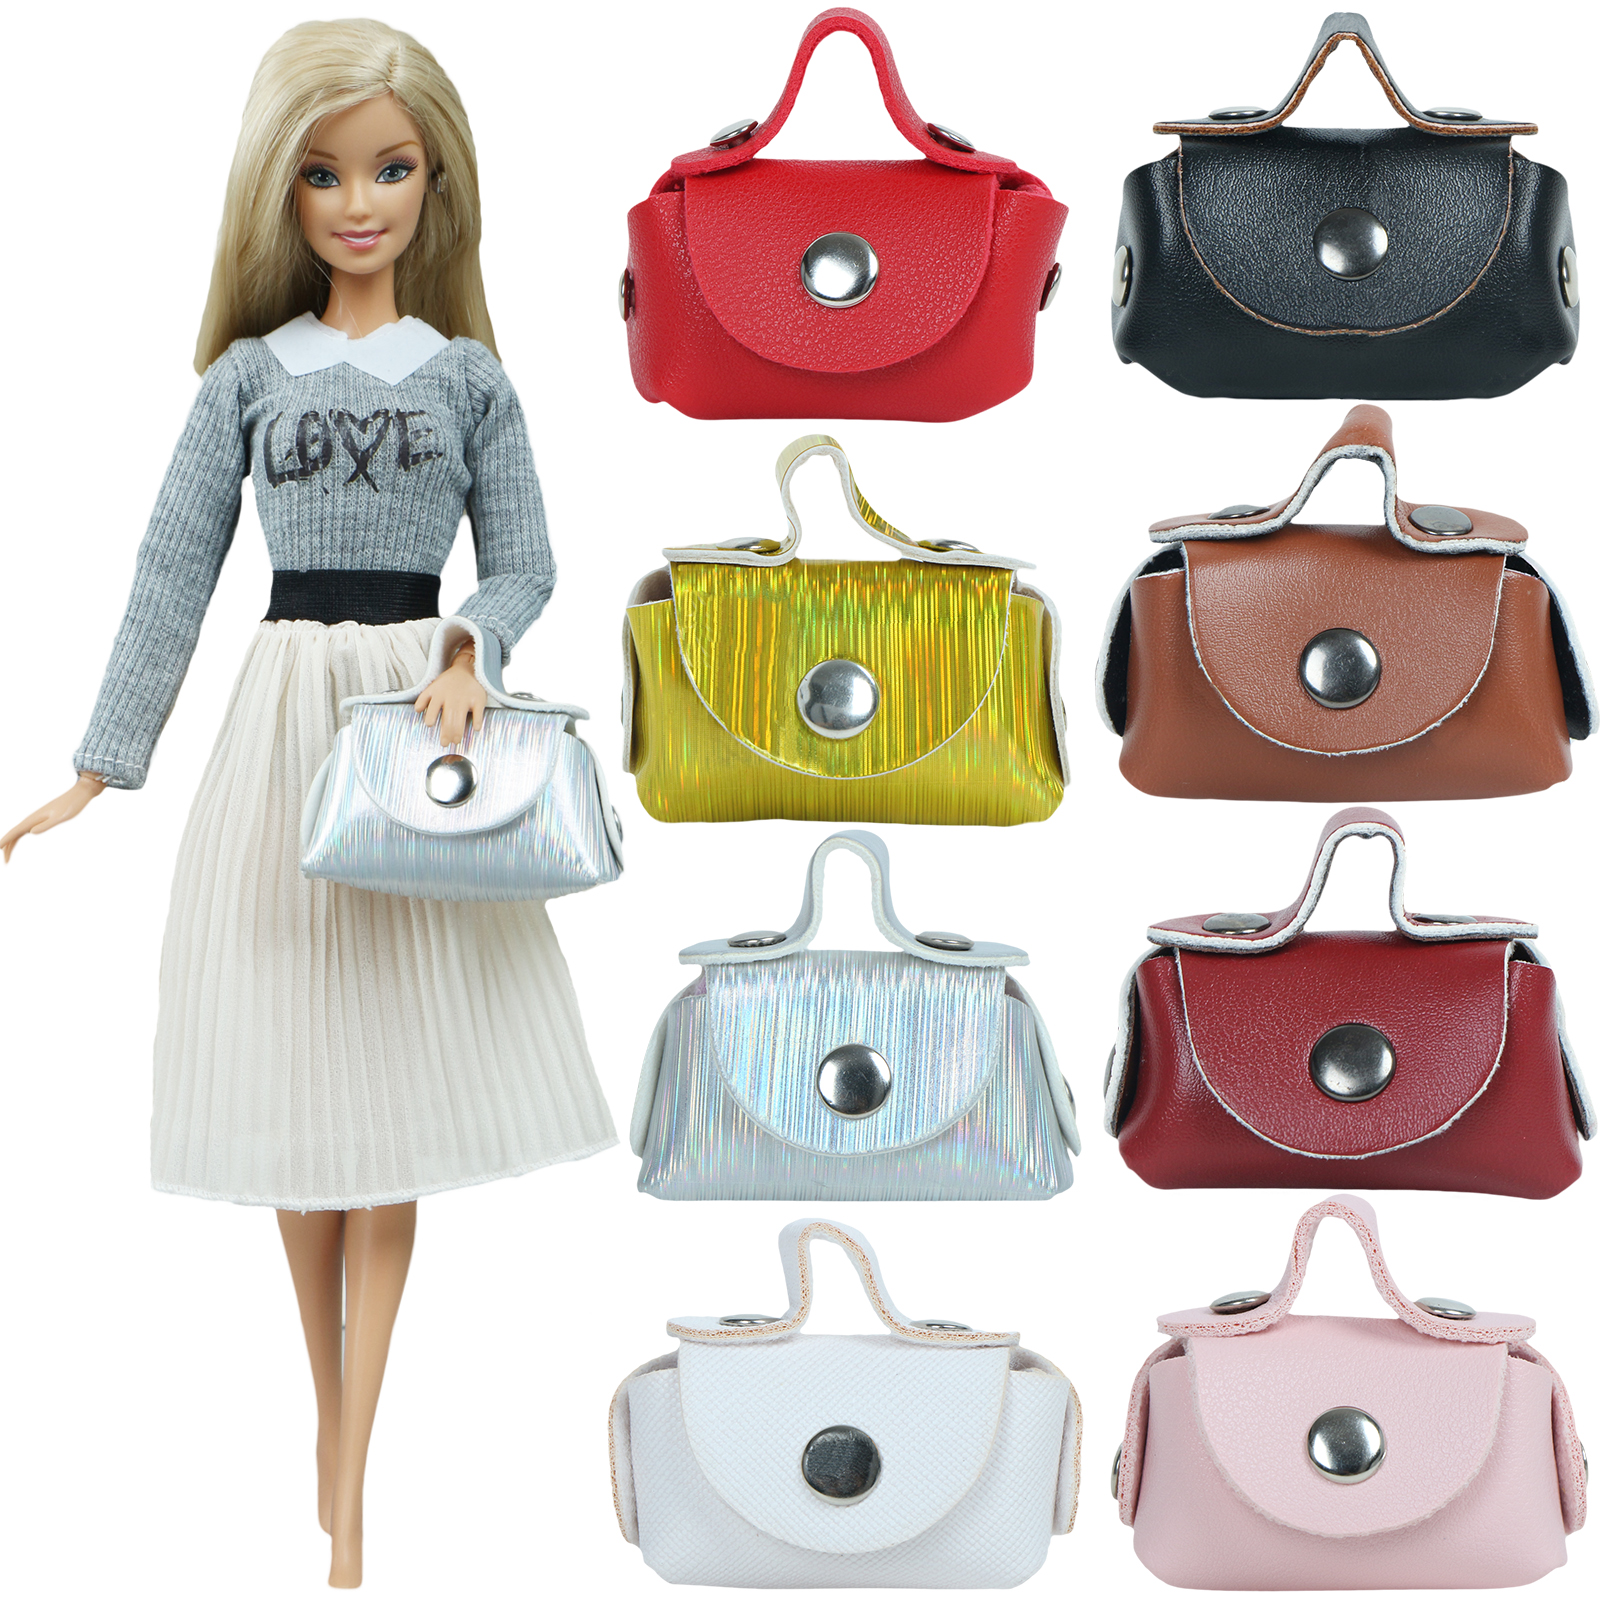 Handmade Doll Bag Mixed Color Red Sliver 1:6 Miniature Shoulder Shopping Handbag For Barbie Doll Clothes Accessories Kids Toy